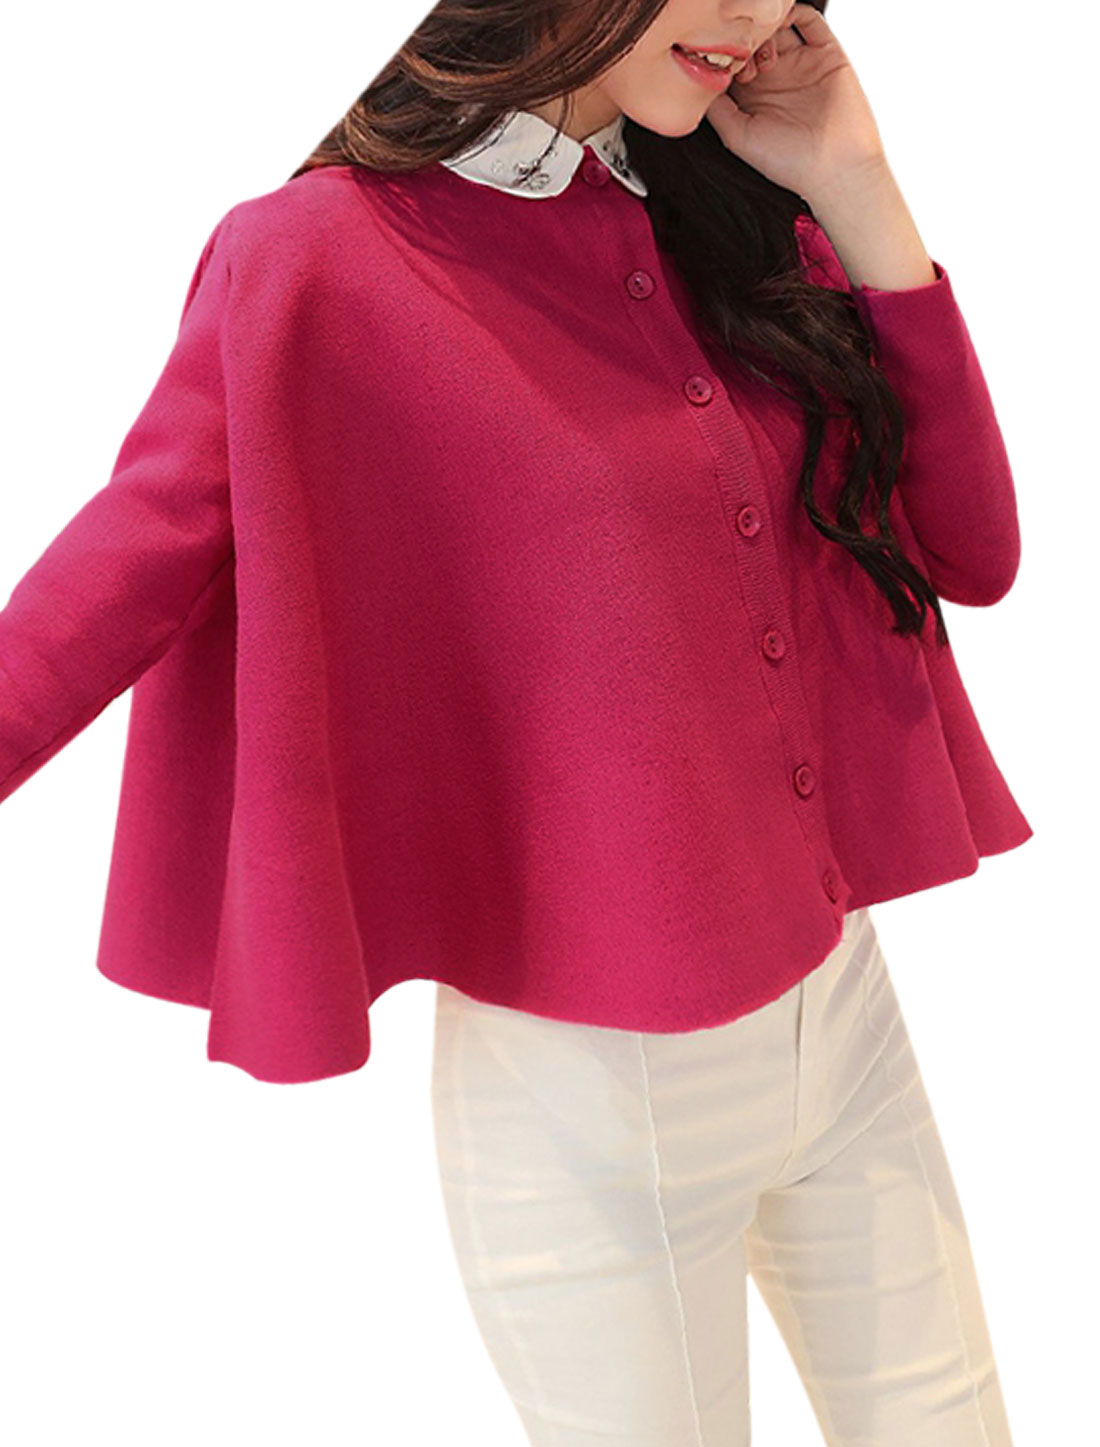 Ladies Single Breasted Front Round Hem Fuchsia Knit Shirt S